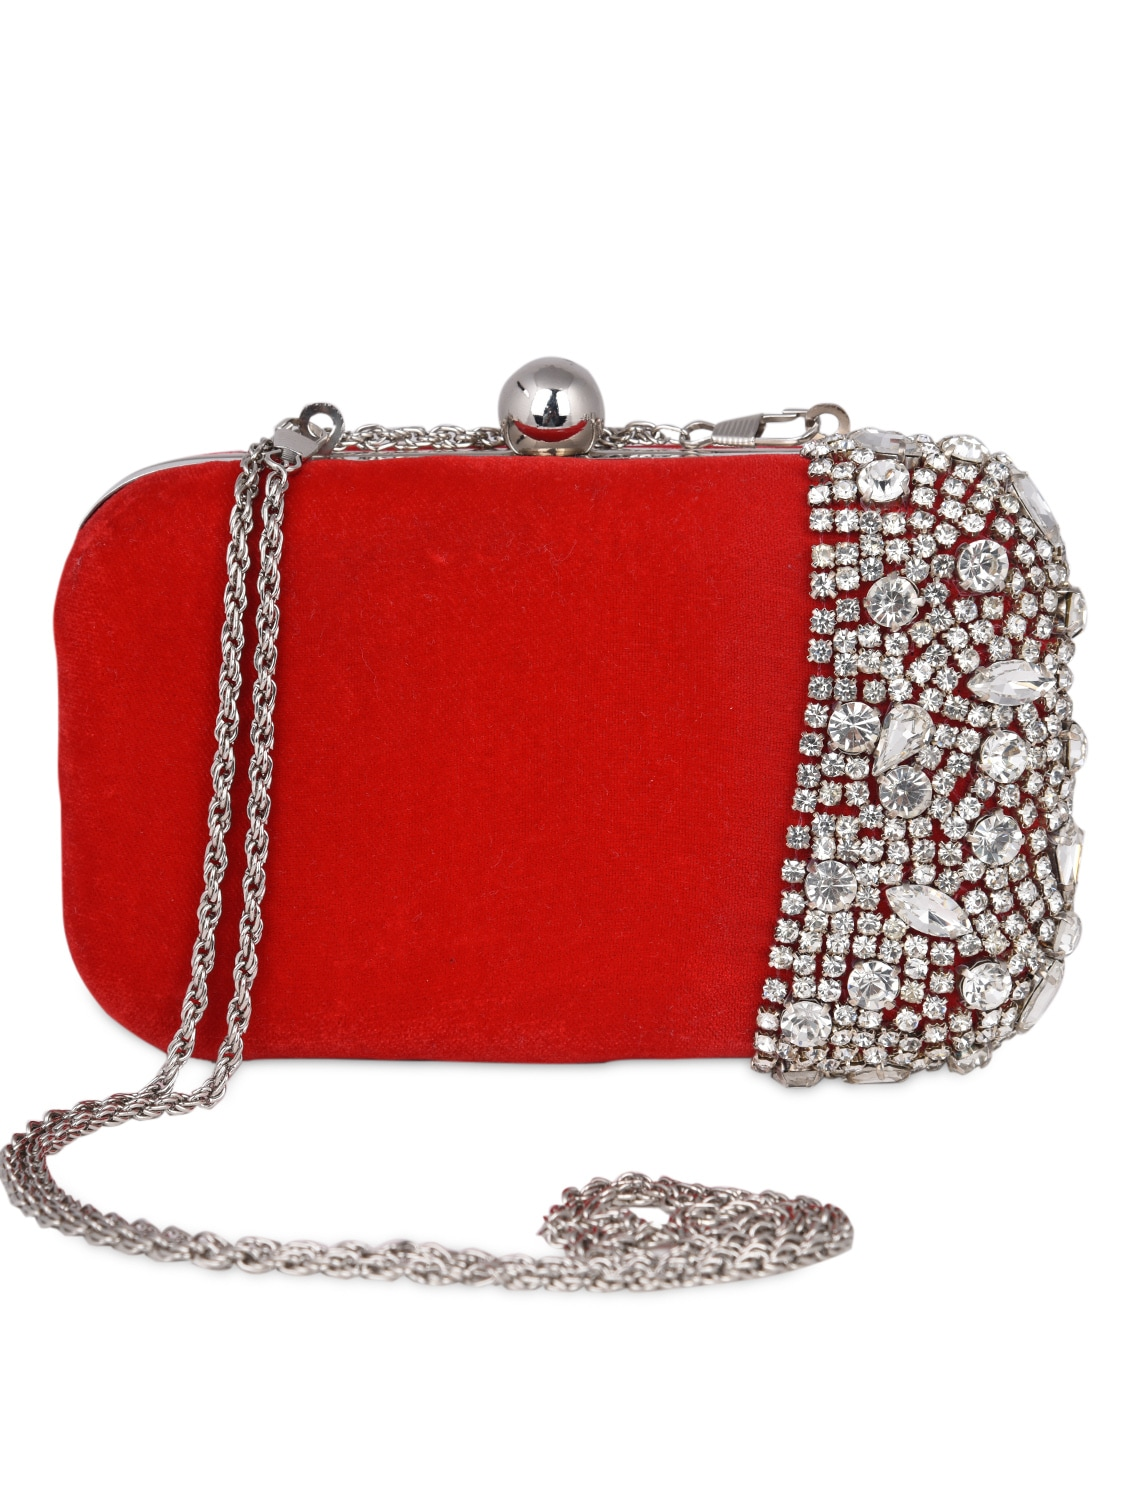 8db5a355be Buy Stone Embellished Velvet Clutch Bag for Women from Uptown for ₹1581 at  49% off | 2019 Limeroad.com